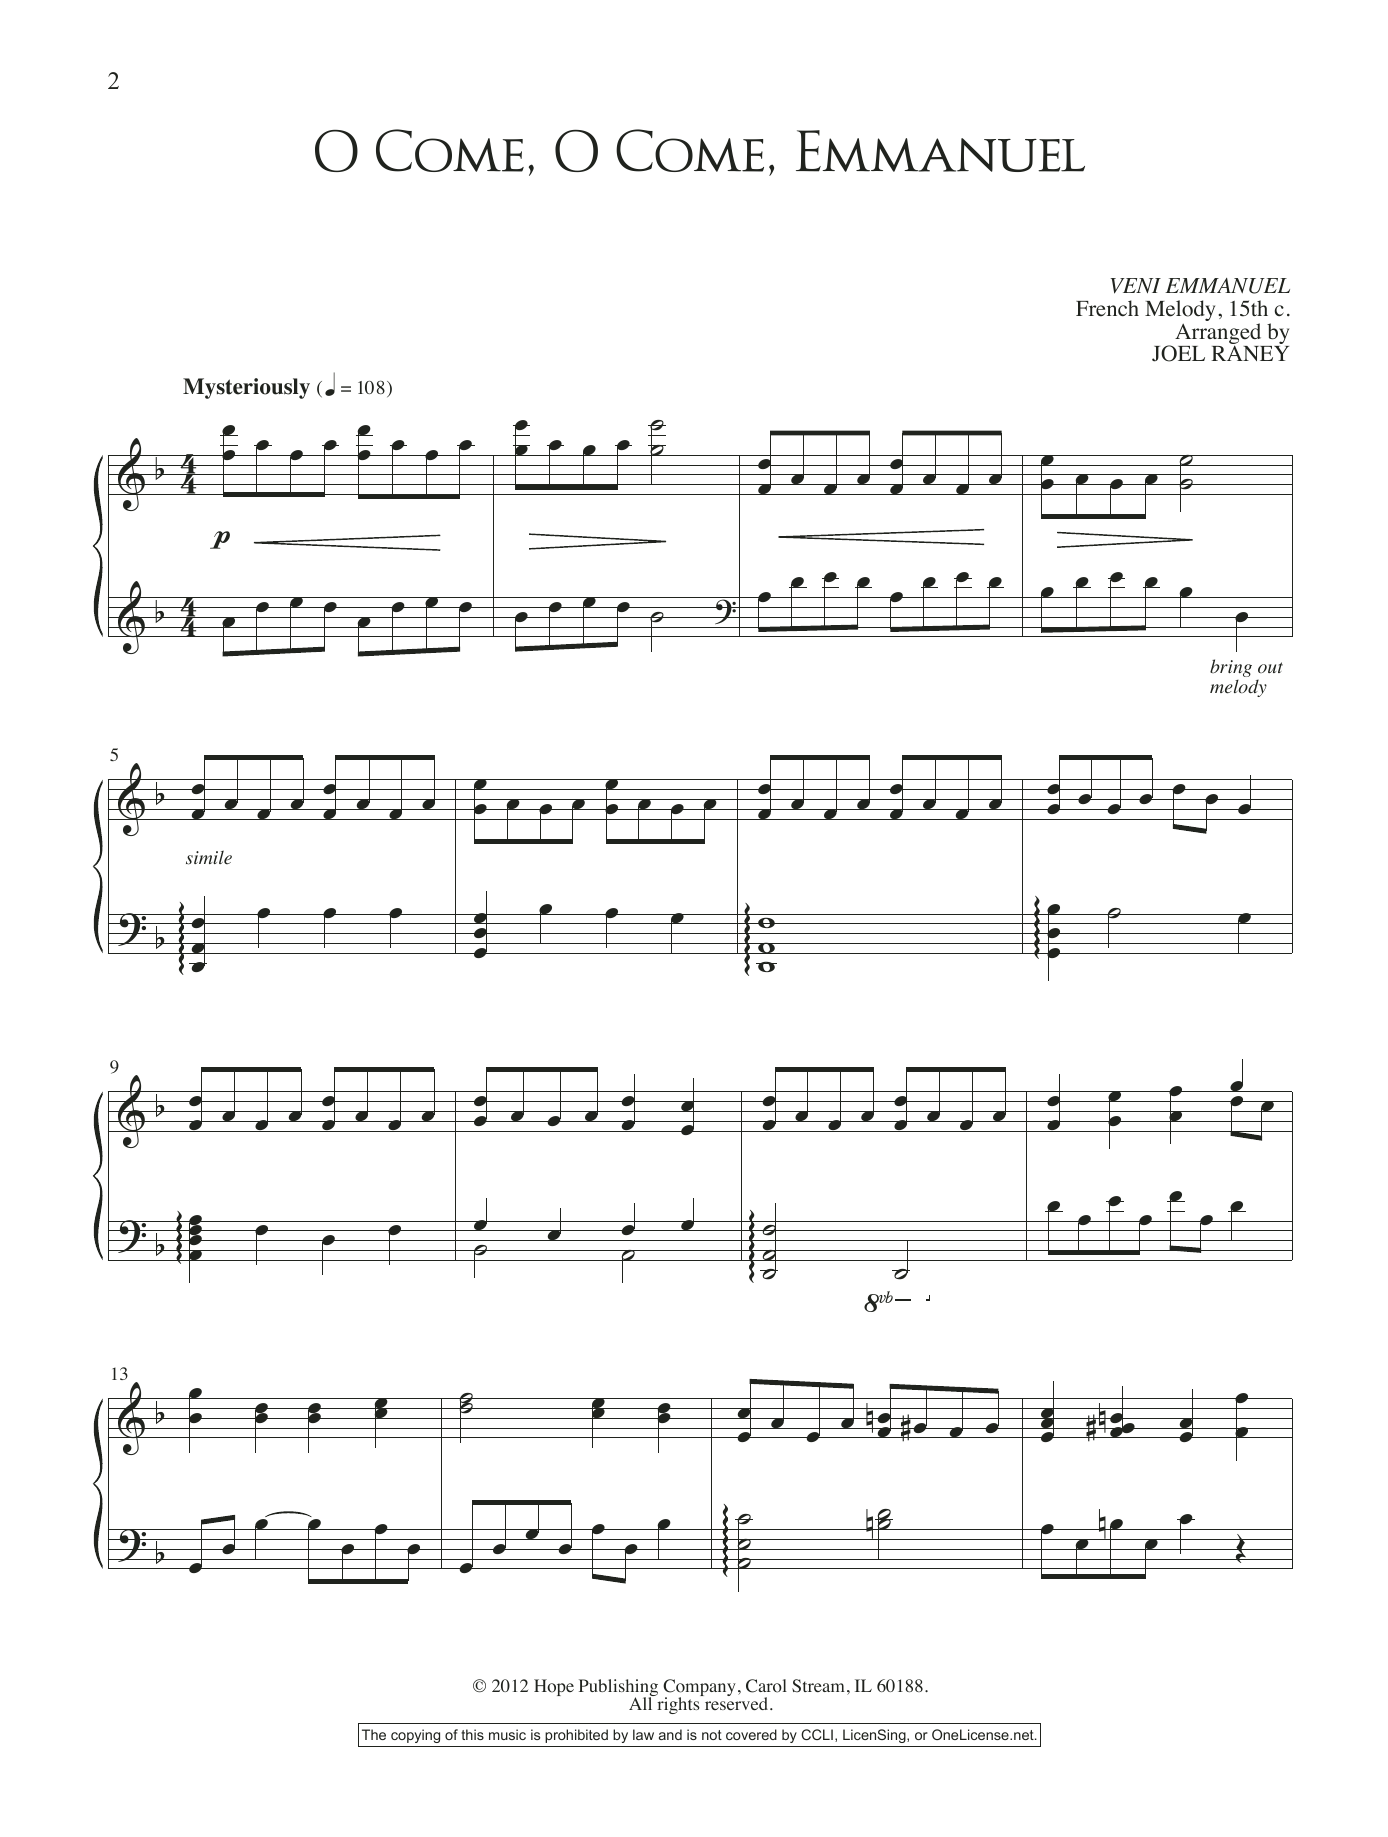 O Come, O Come, Emmanuel | Sheet Music Direct